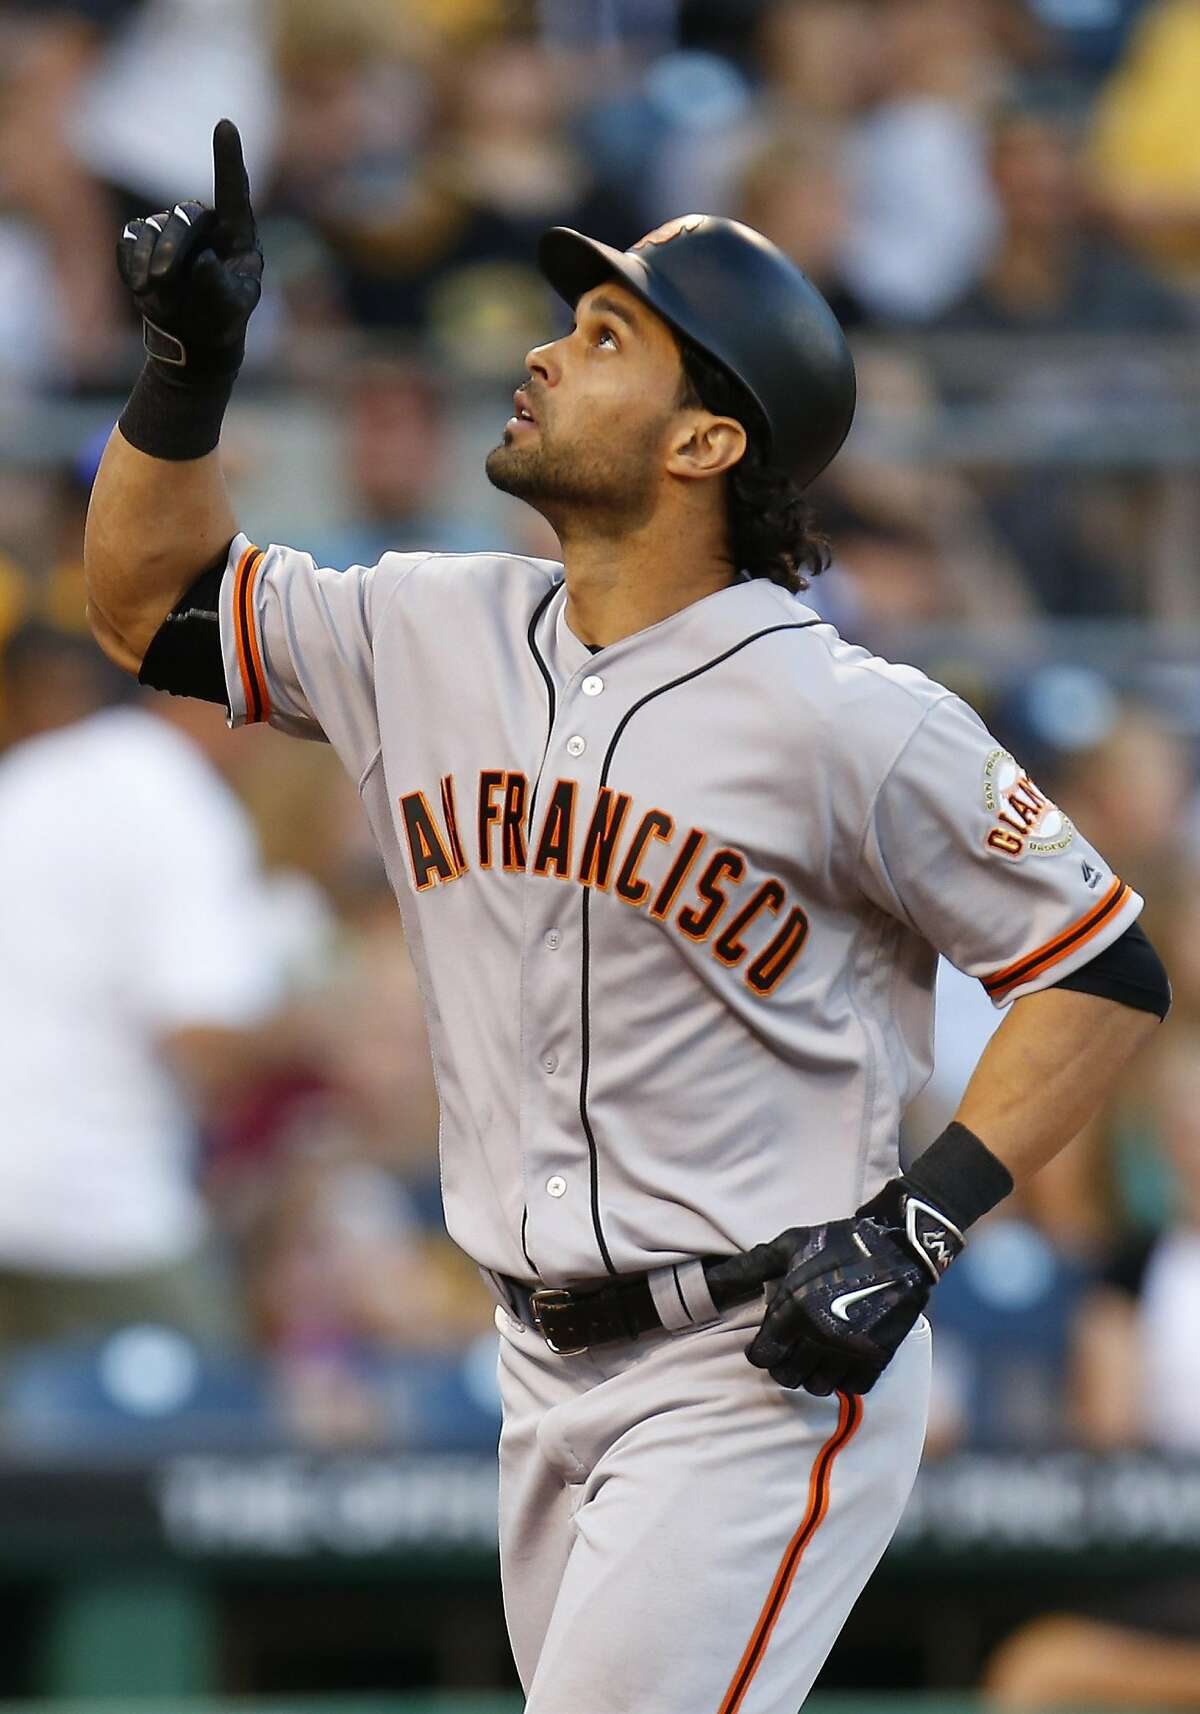 PITTSBURGH, PA - JUNE 21: Angel Pagan #16 of the San Francisco Giants reacts after hitting a grand slam home run in the fourth inning during the game against the Pittsburgh Pirates at PNC Park on June 21, 2016 in Pittsburgh, Pennsylvania. (Photo by Justin K. Aller/Getty Images)